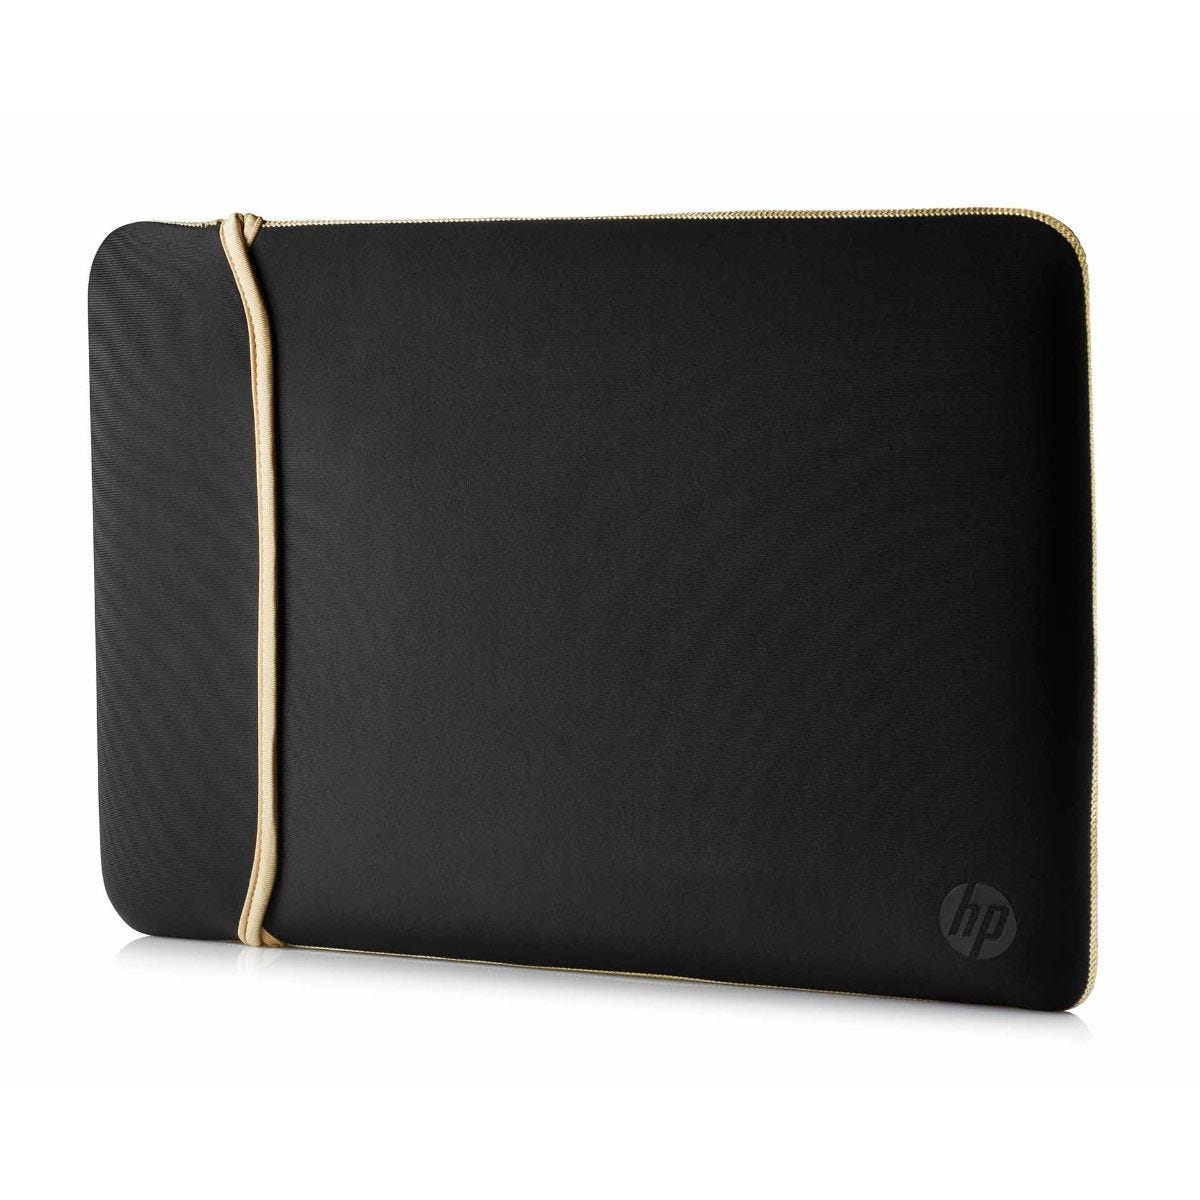 Image of HP Neoprene 15 Inch Reversible Laptop Sleeve - Black and Gold